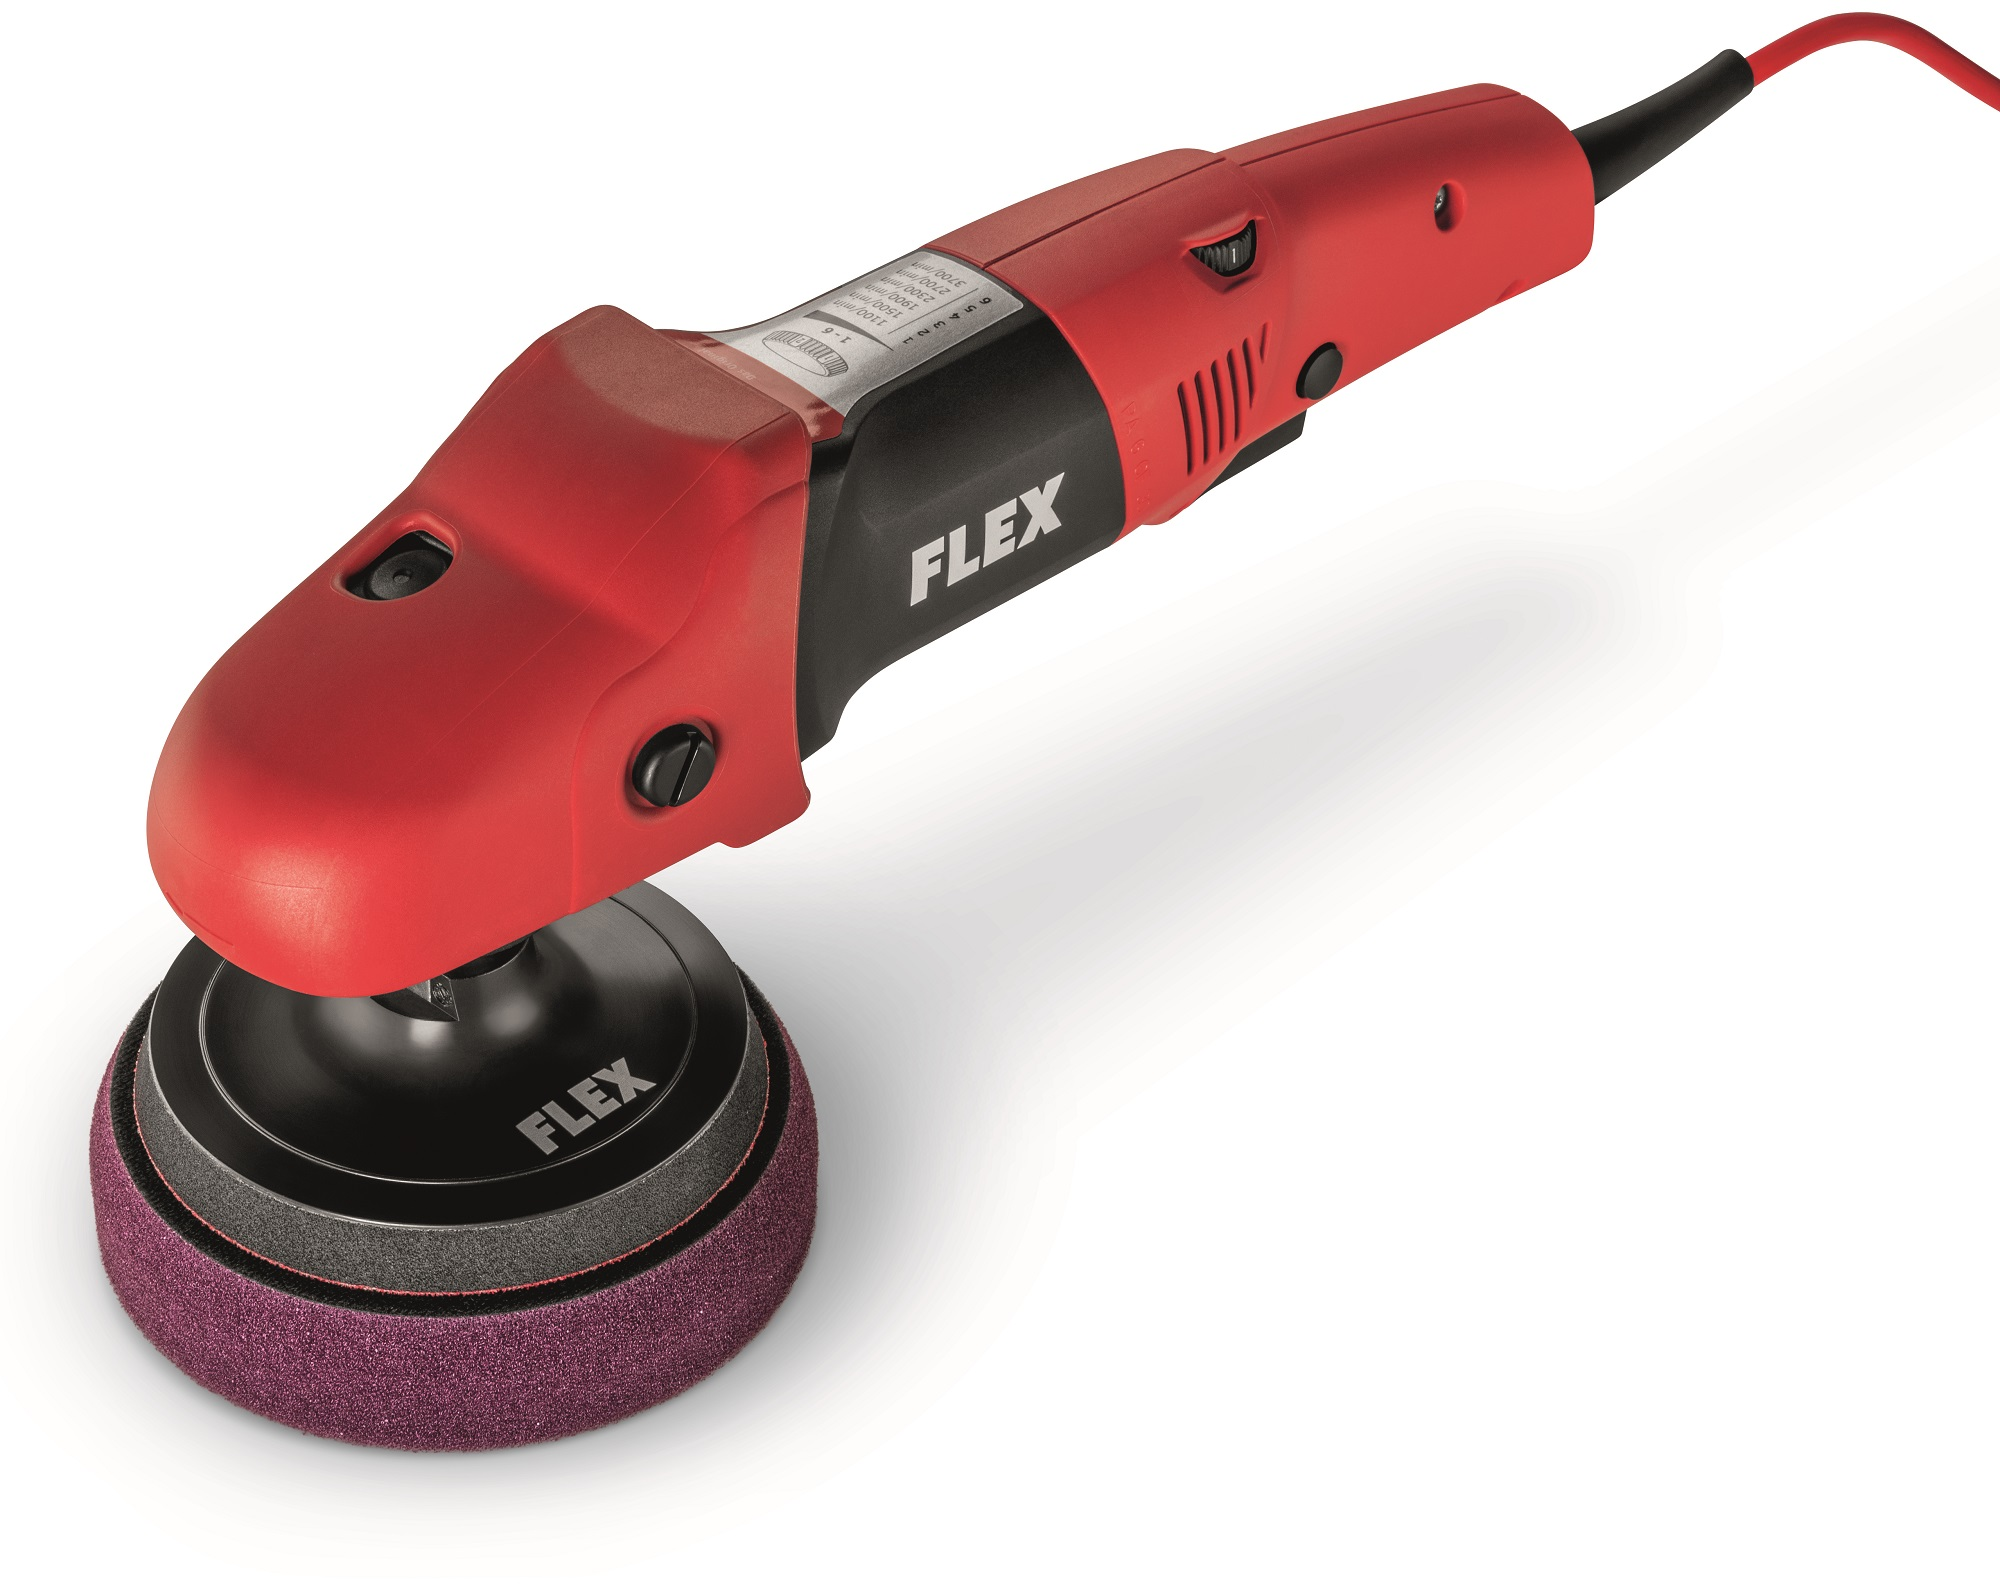 FLEX Ergonomic polishing machine with accelerator switch 406813